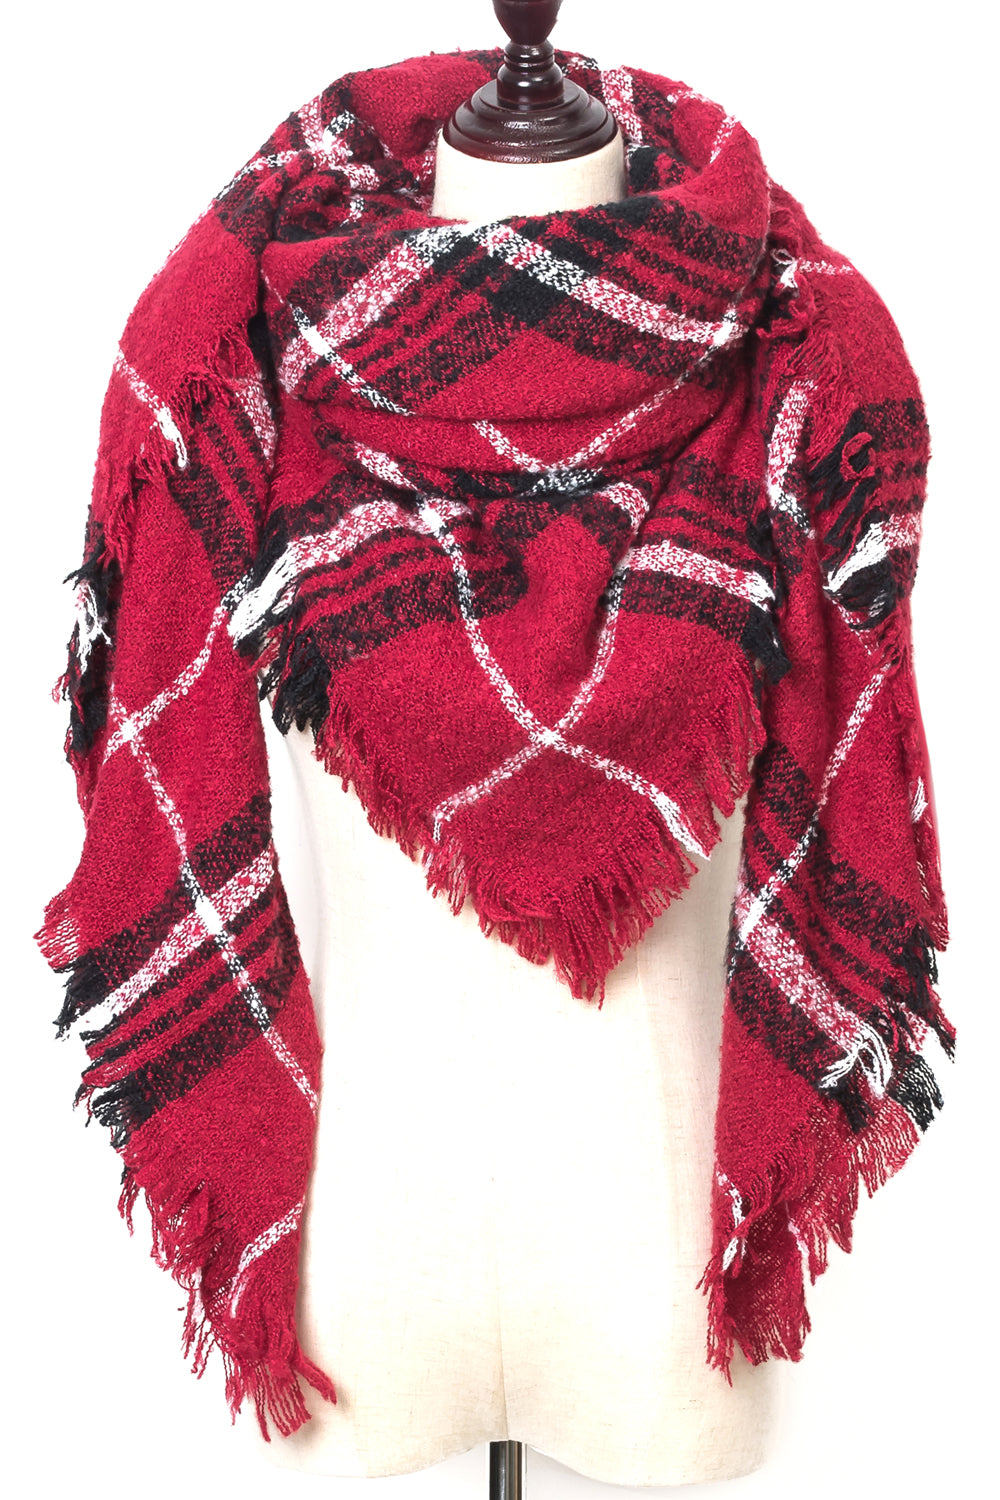 Red Plaid Square scarf by Just Cozy.